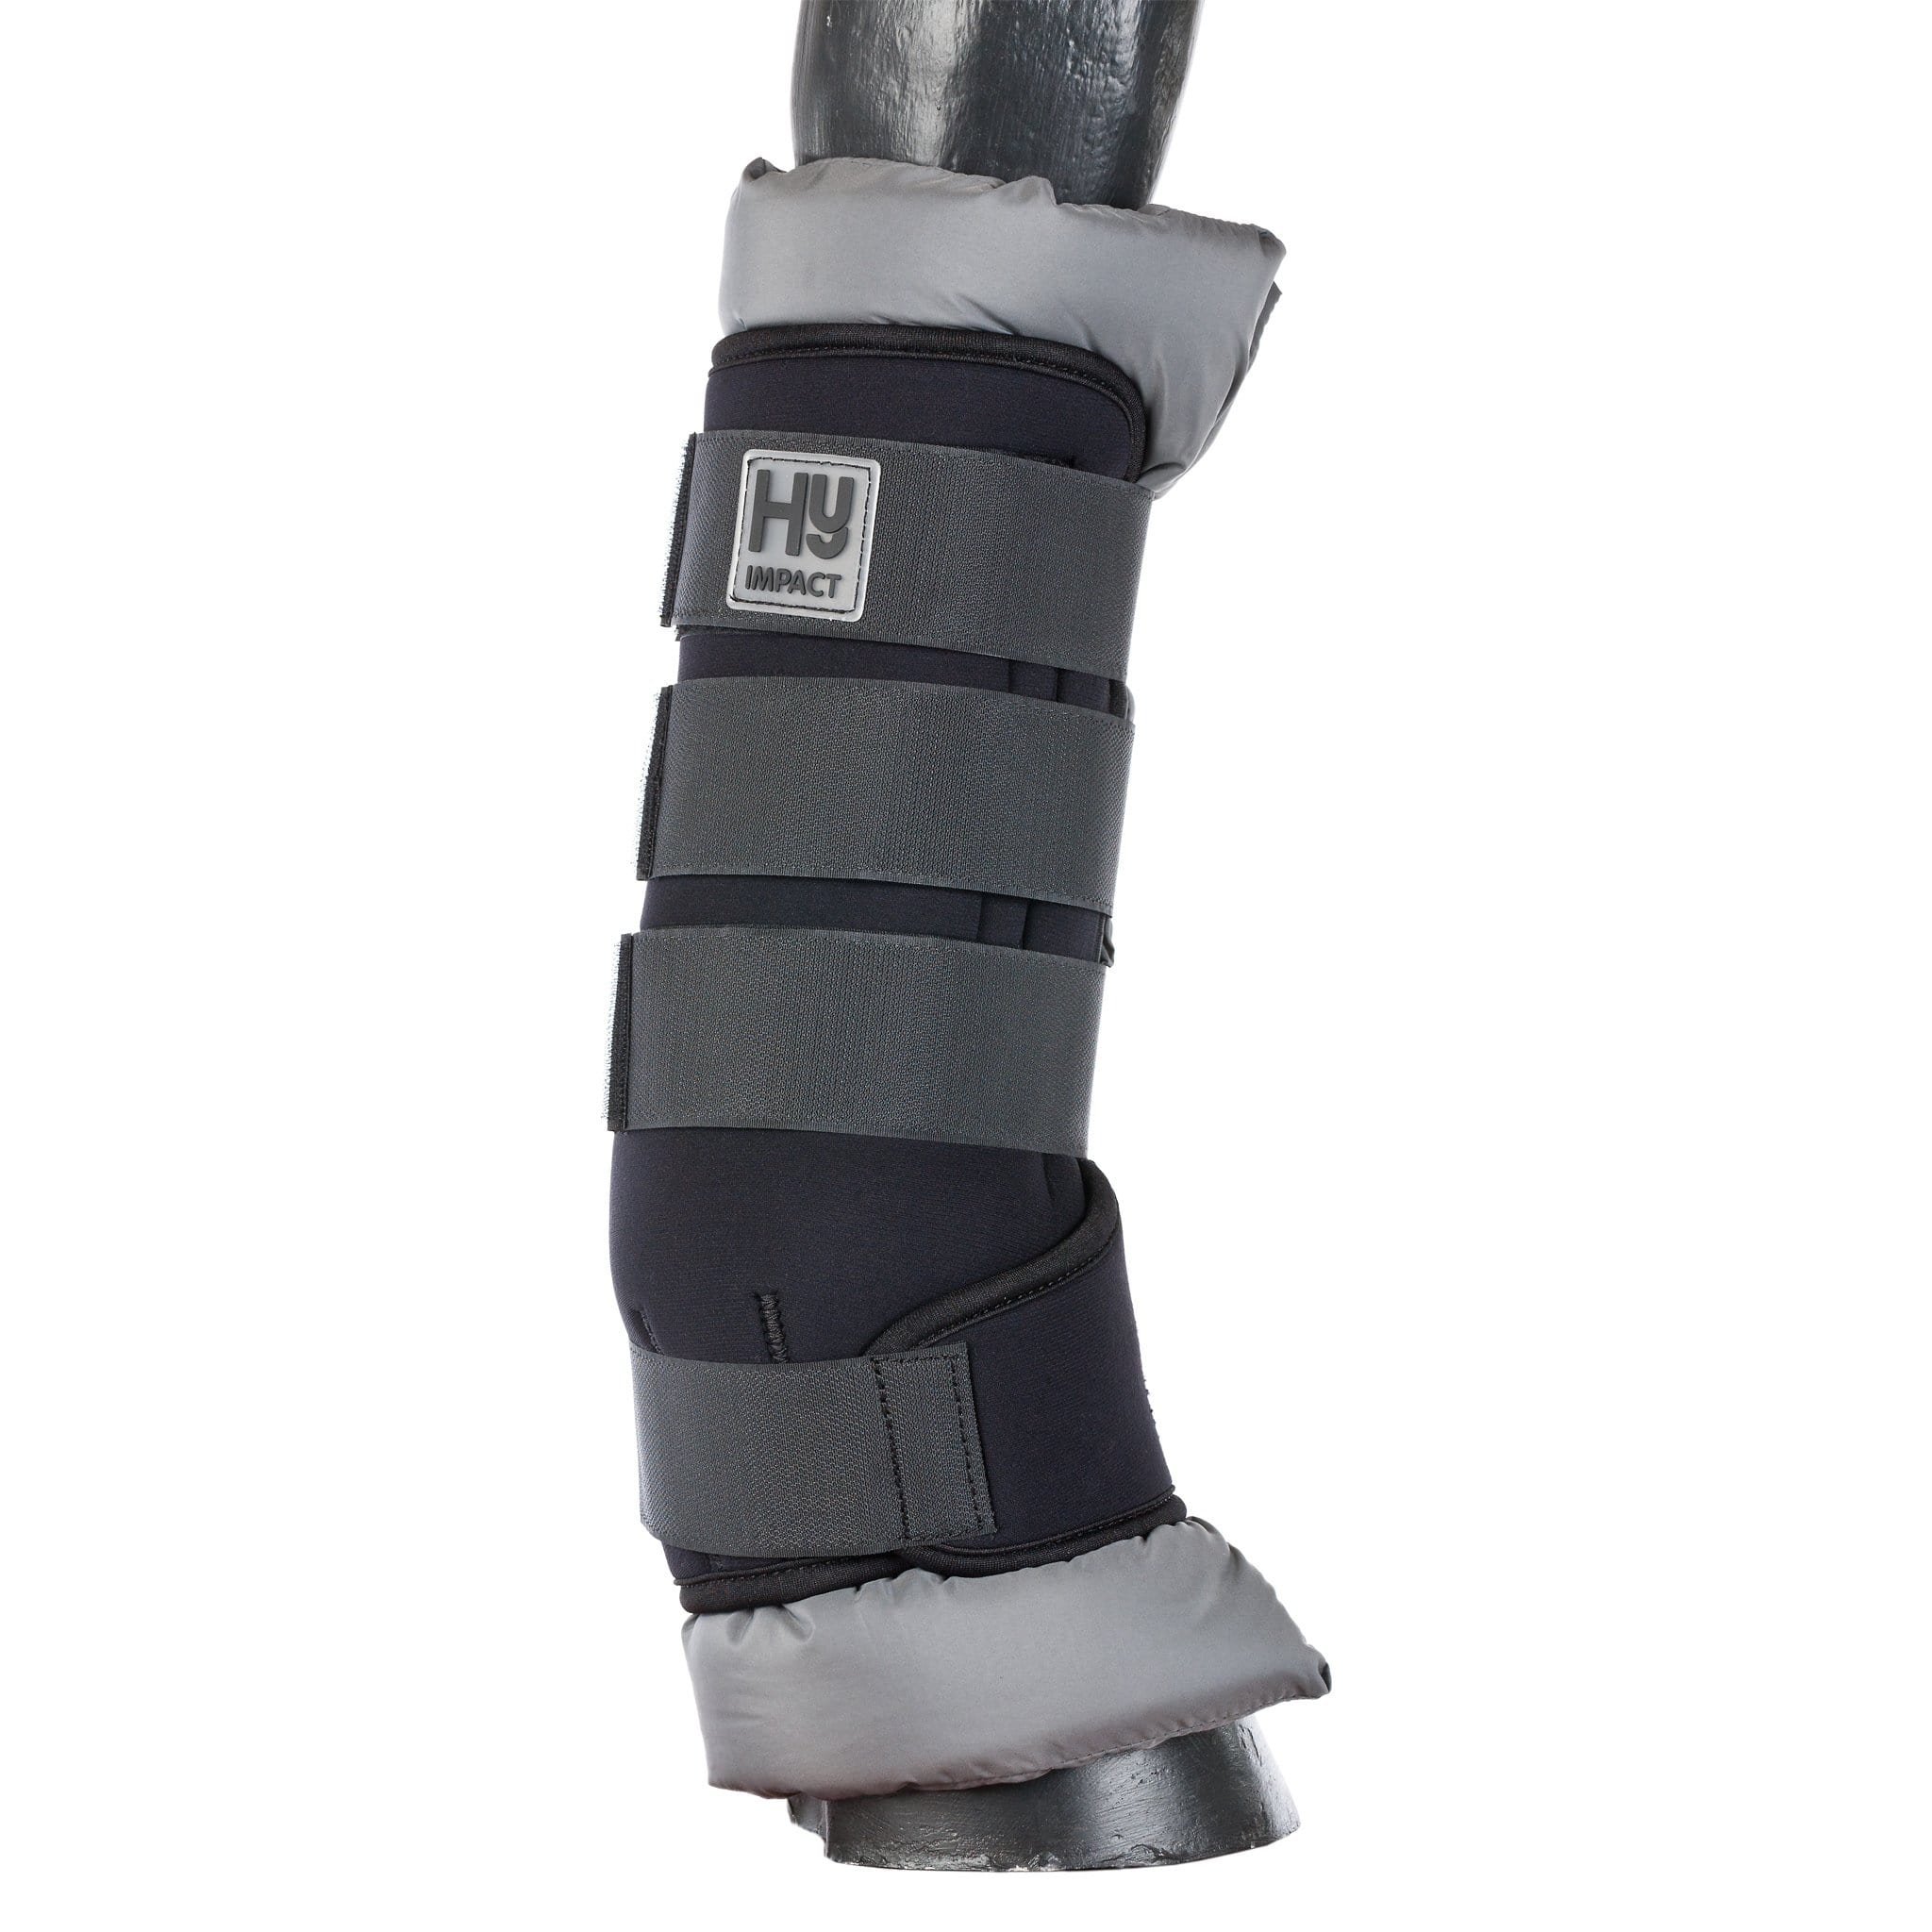 HyIMPACT Stable Protection Boots Outside 6109